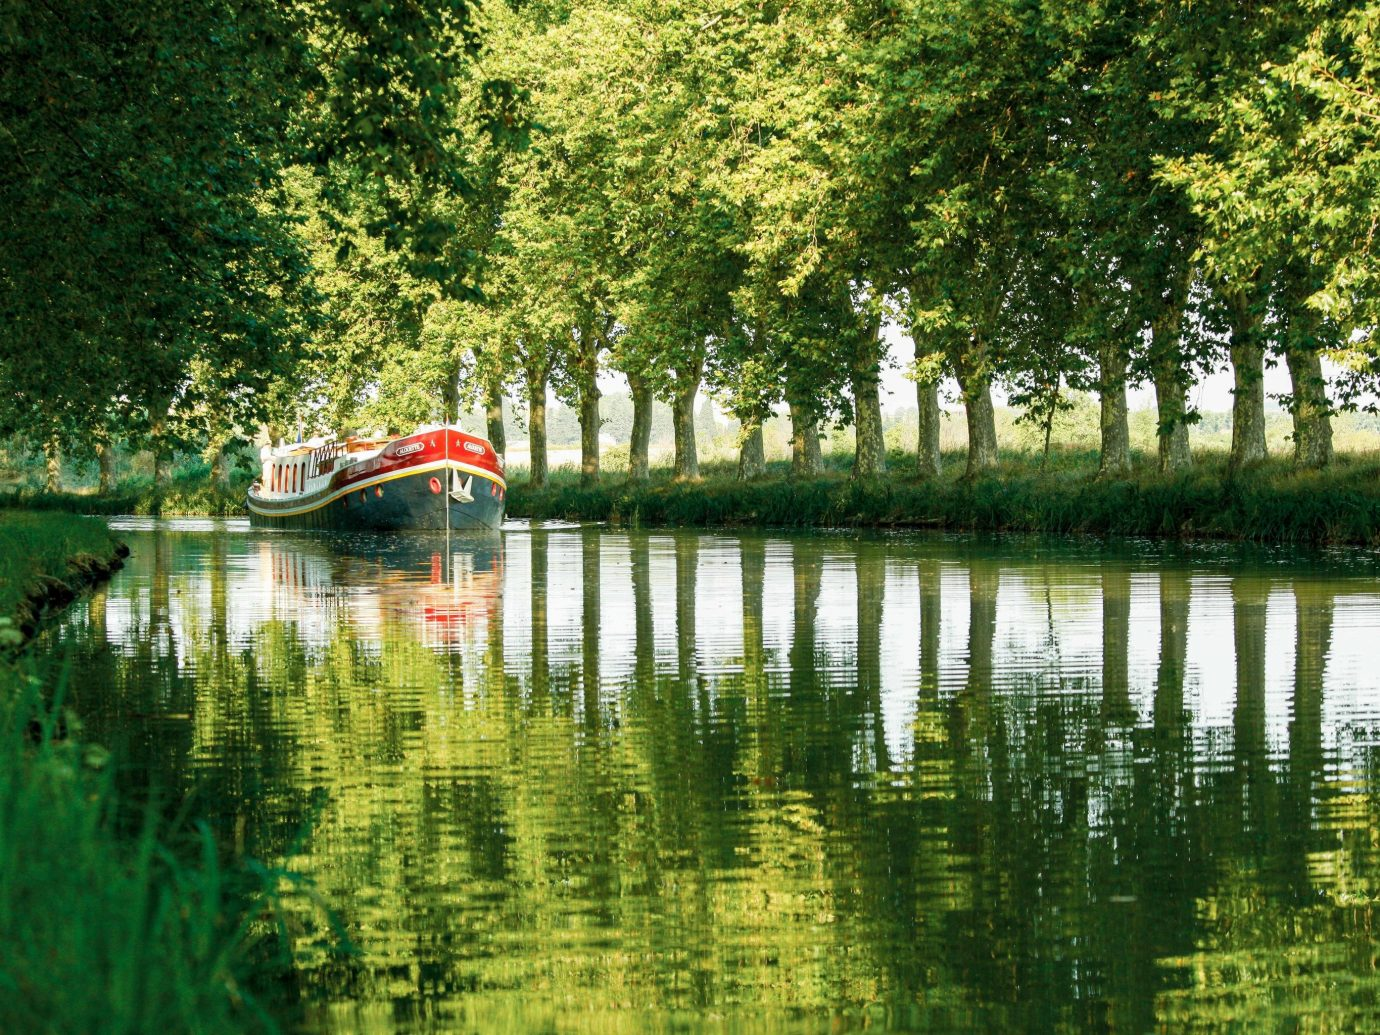 Cruise Travel Luxury Travel tree outdoor water grass reflection waterway Canal Nature body of water green bank leaf River Lake plant pond bayou landscape wetland watercourse floodplain recreation surrounded